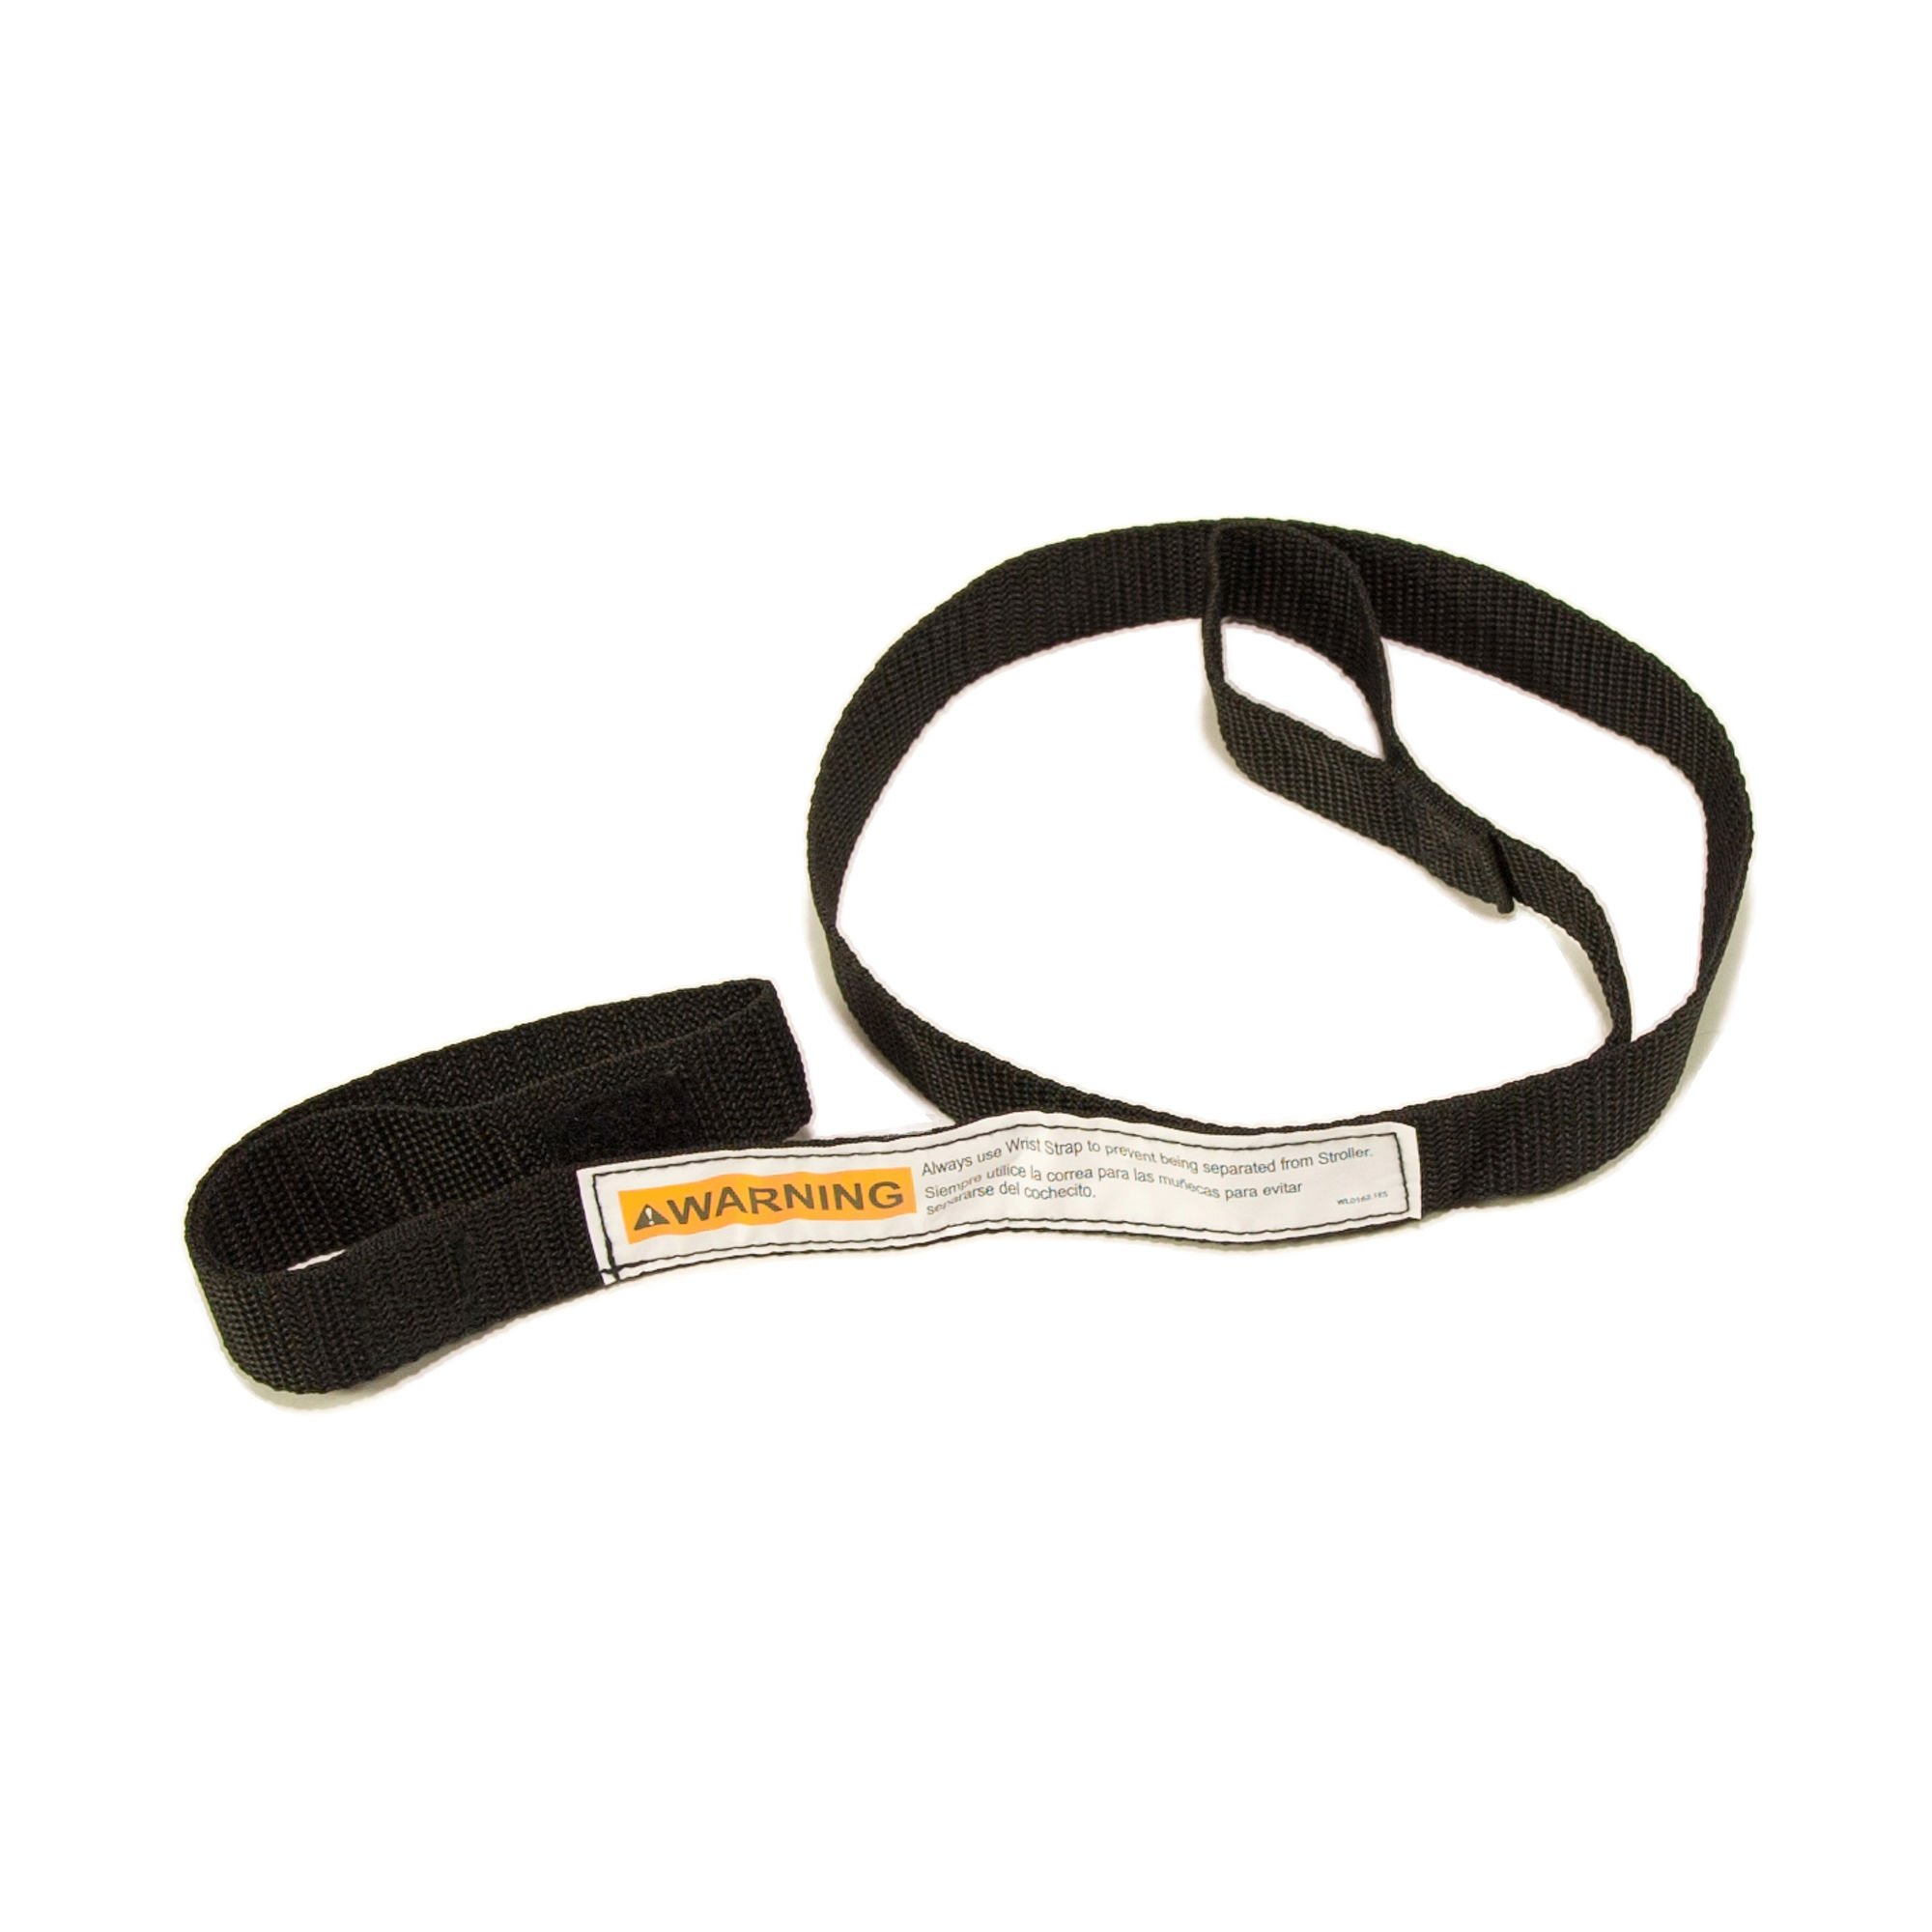 Chicco ACTIV3 Jogging Stroller - Replacement Activ3 Wrist Strap by Chicco (Image #1)